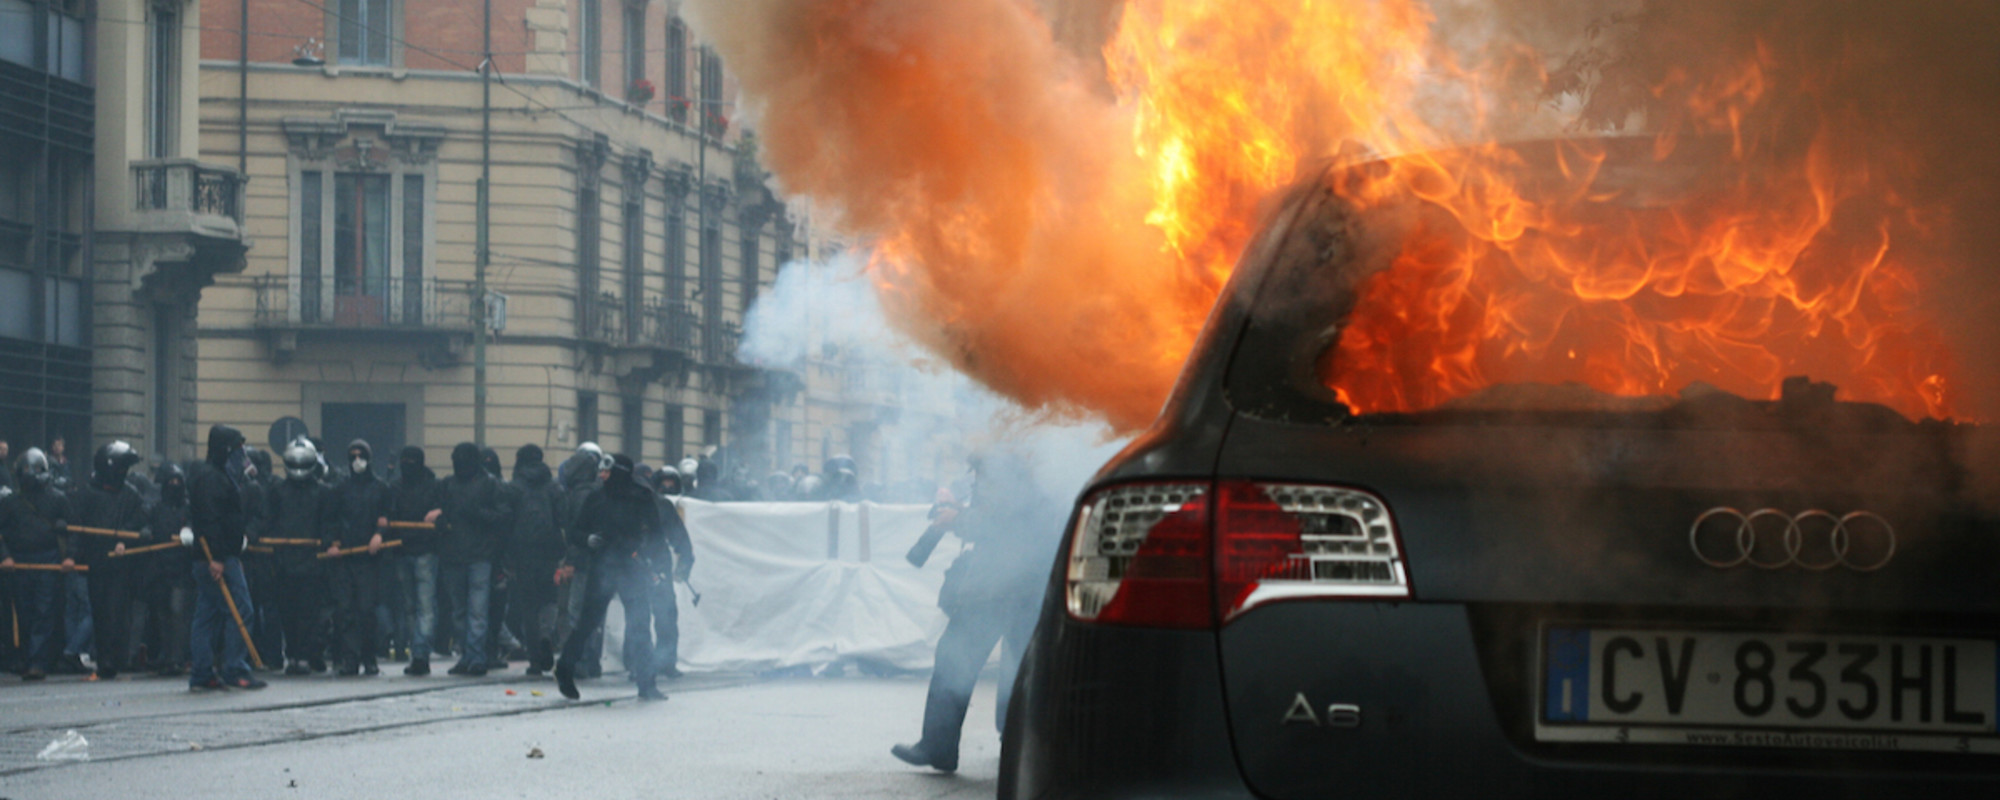 In Photos: Milan's May Day 'No Expo' Riots